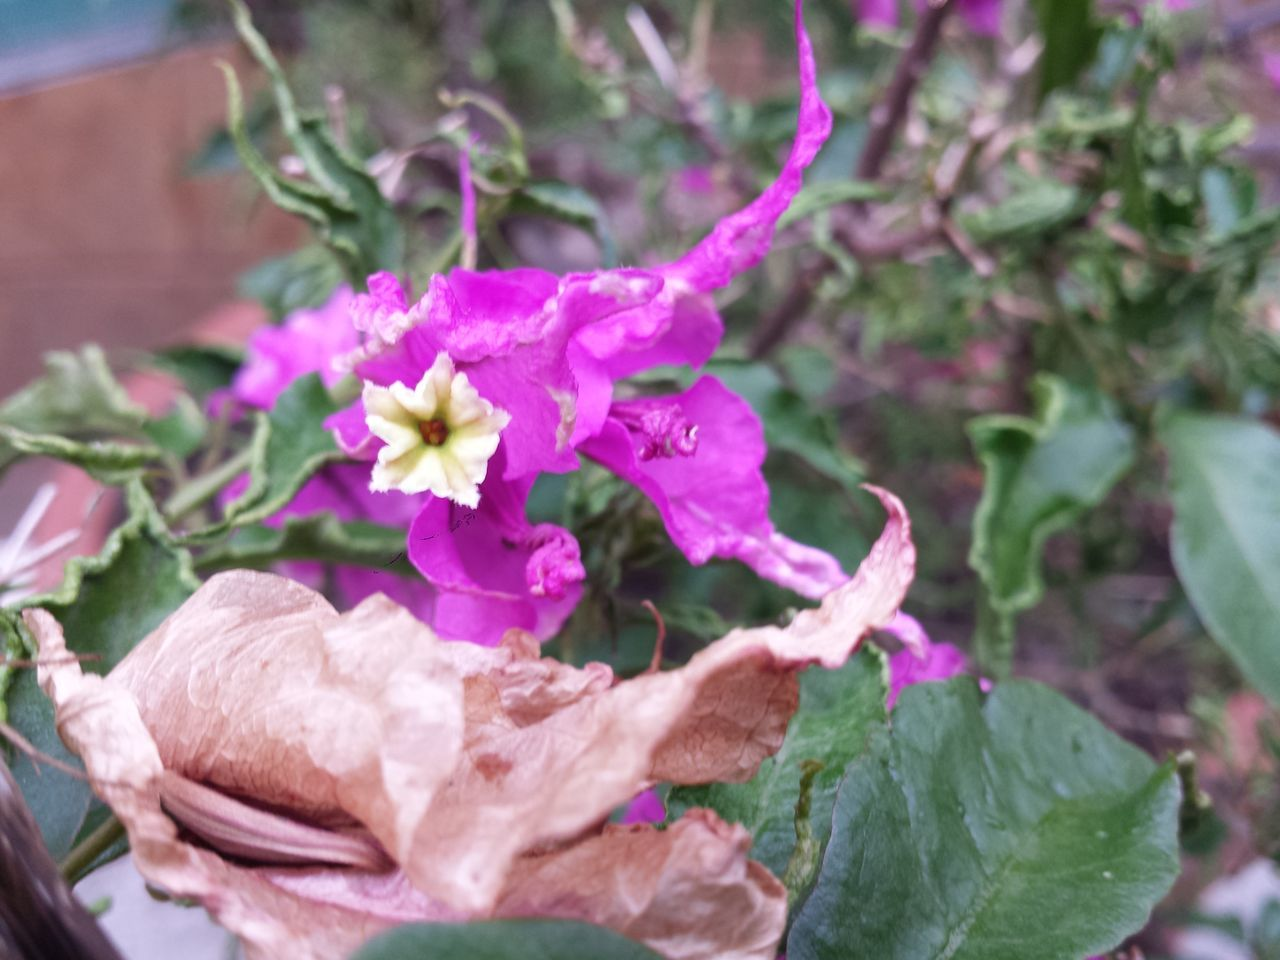 flower, fragility, freshness, day, petal, no people, plant, close-up, leaf, nature, outdoors, growth, flower head, beauty in nature